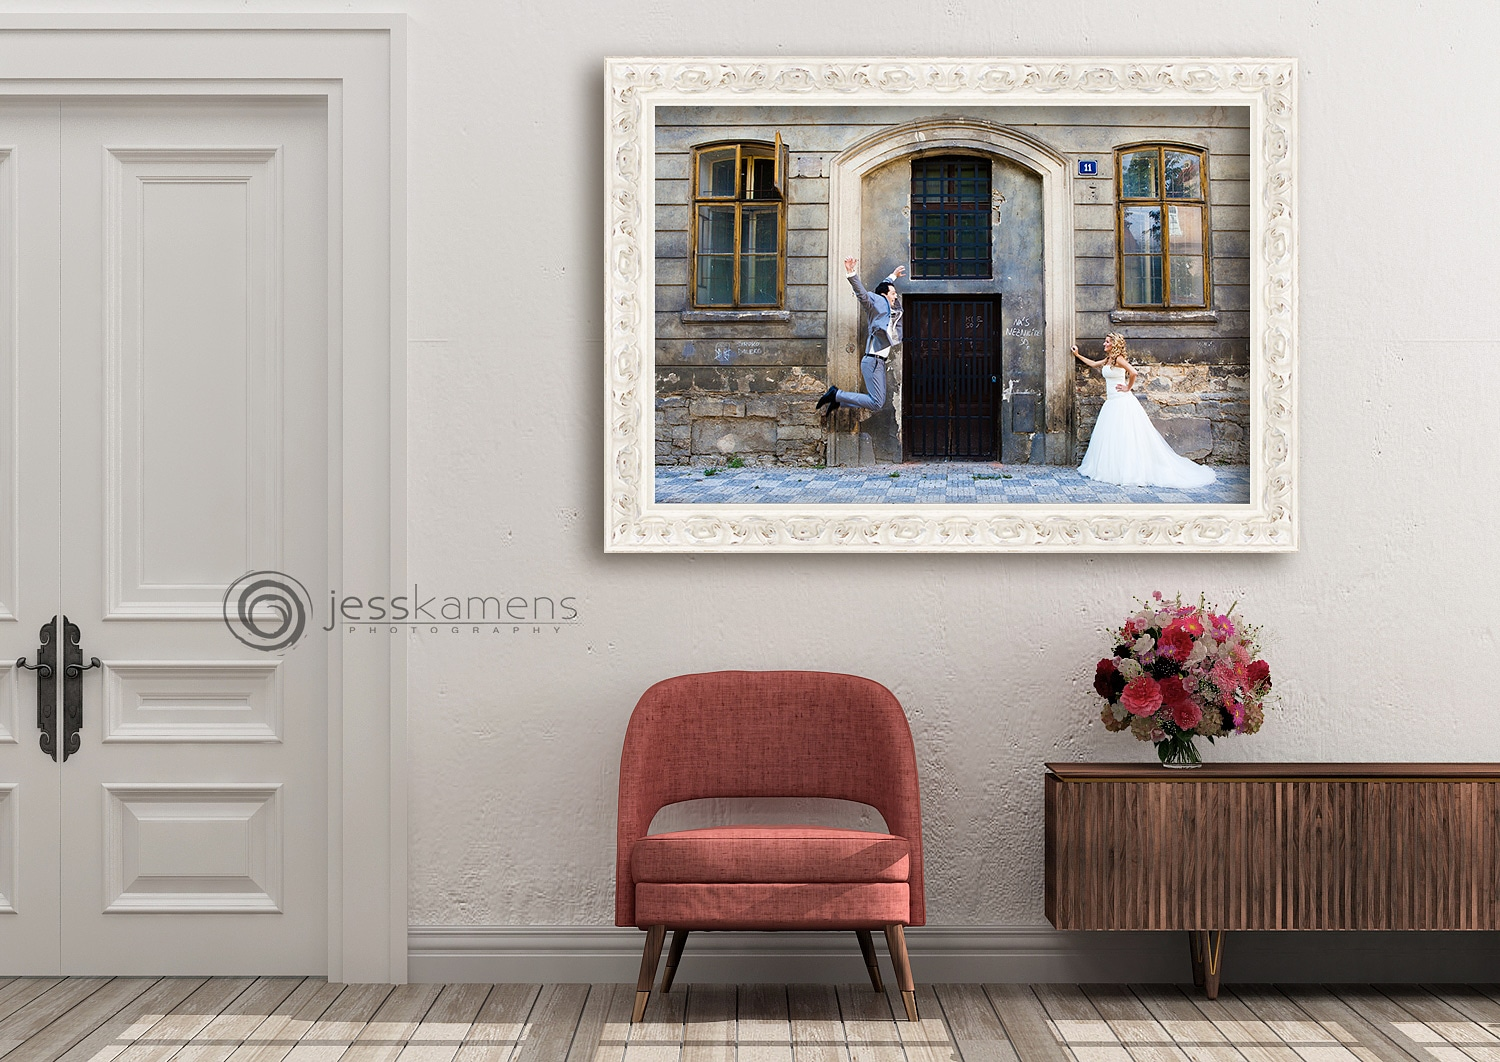 a wedding portrait hangs on the wall of a home above a red chair and a sideboard